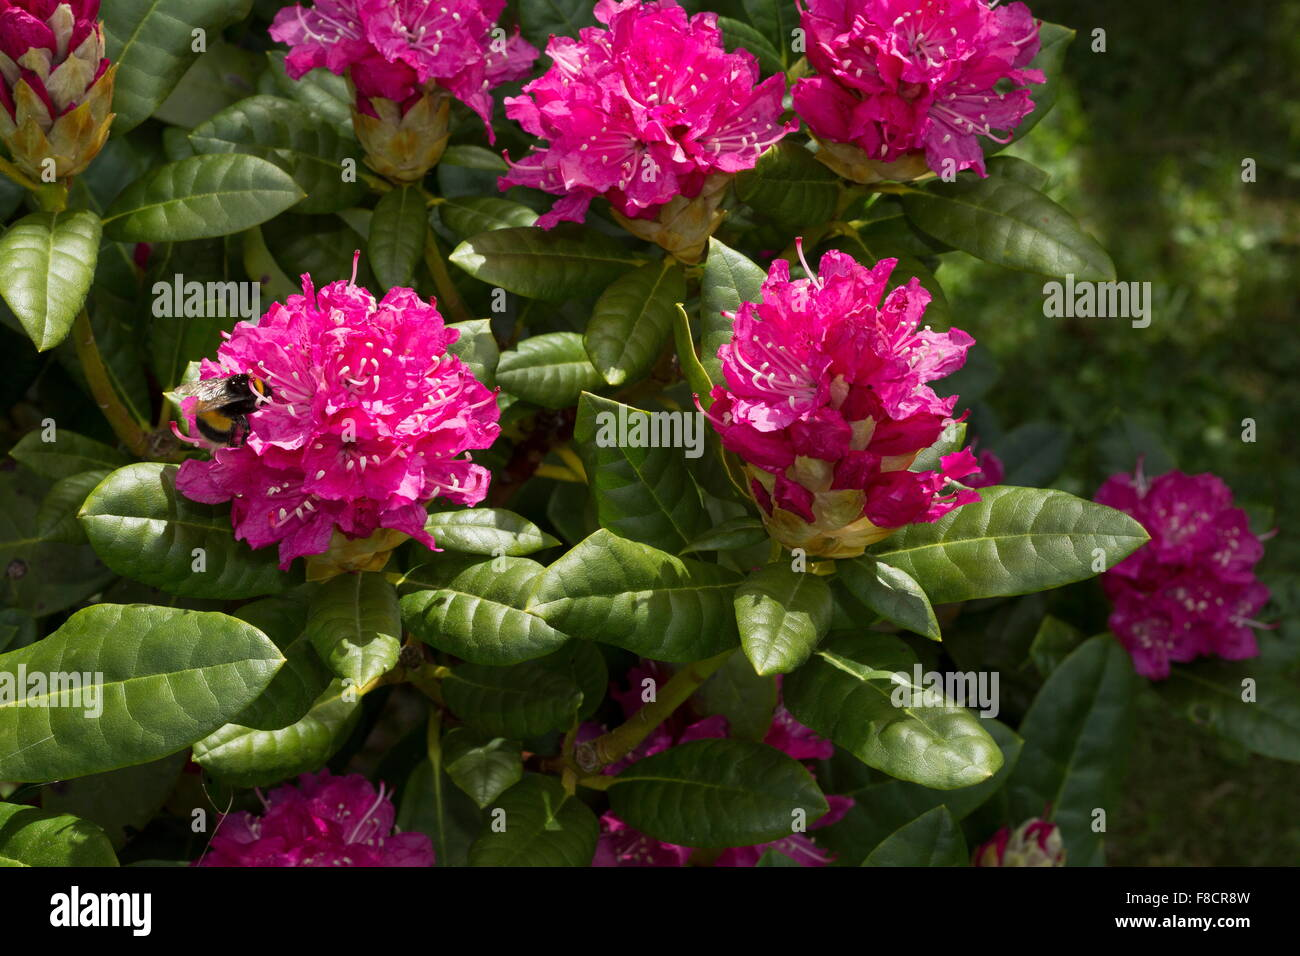 Rhododendron Rocket Garden Variety In Cultivation Stock Photo